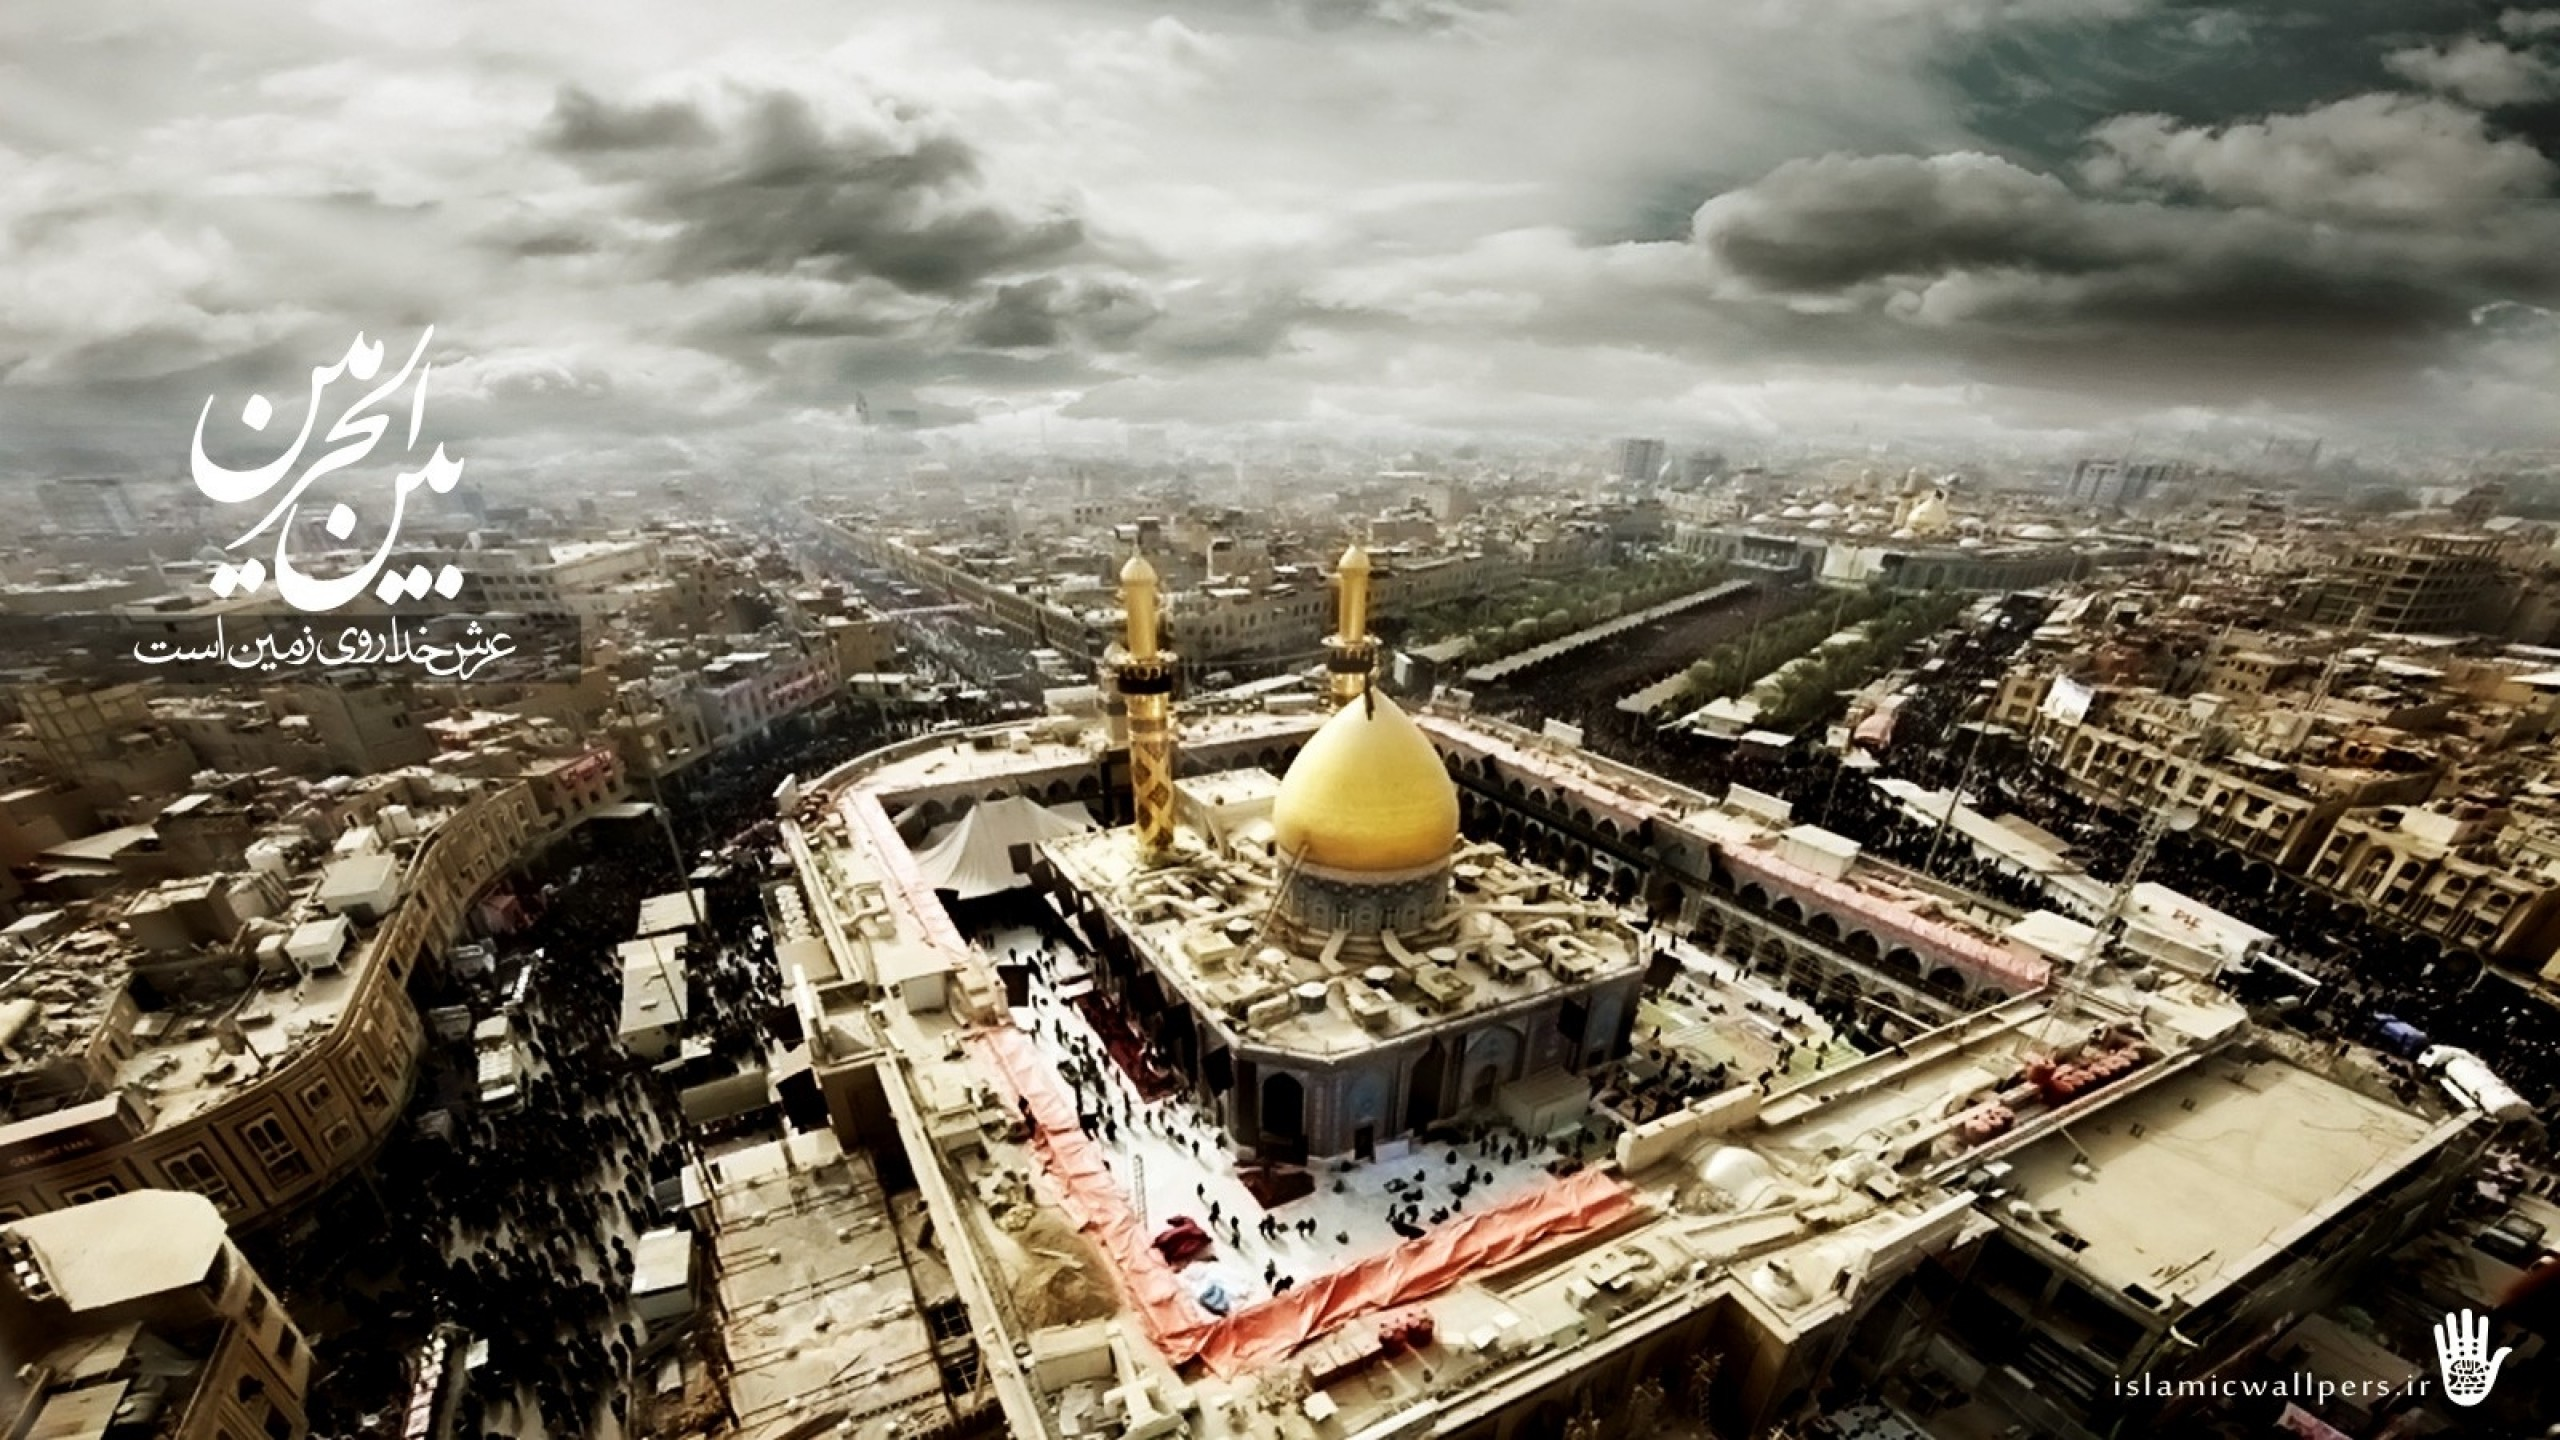 karbala wallpapers 46 images